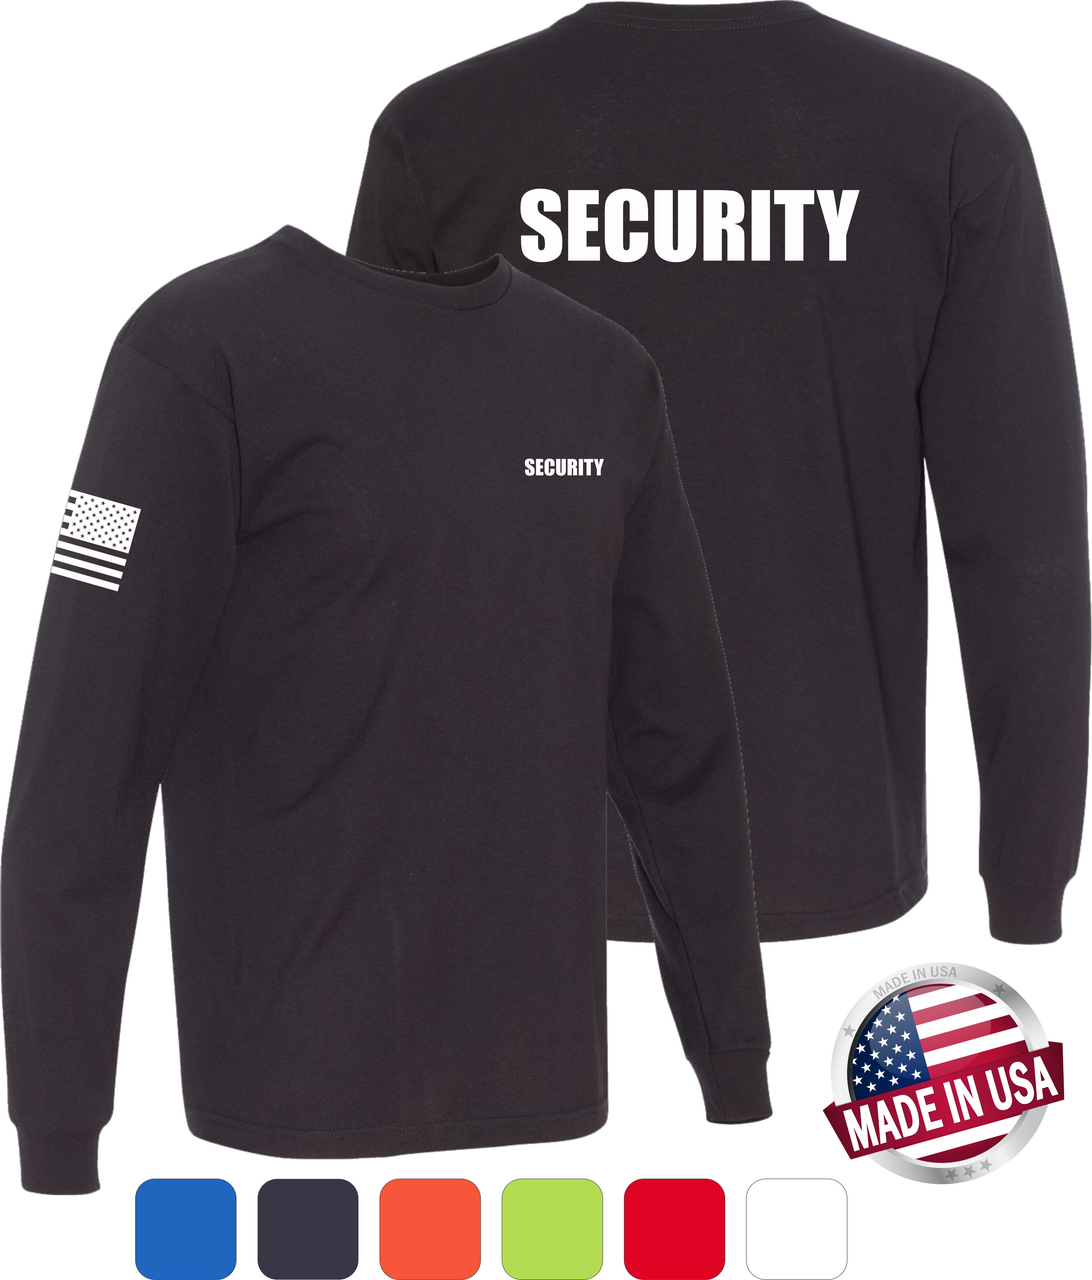 Black Long Sleeve Security T Shirt made in the USA with America Flag